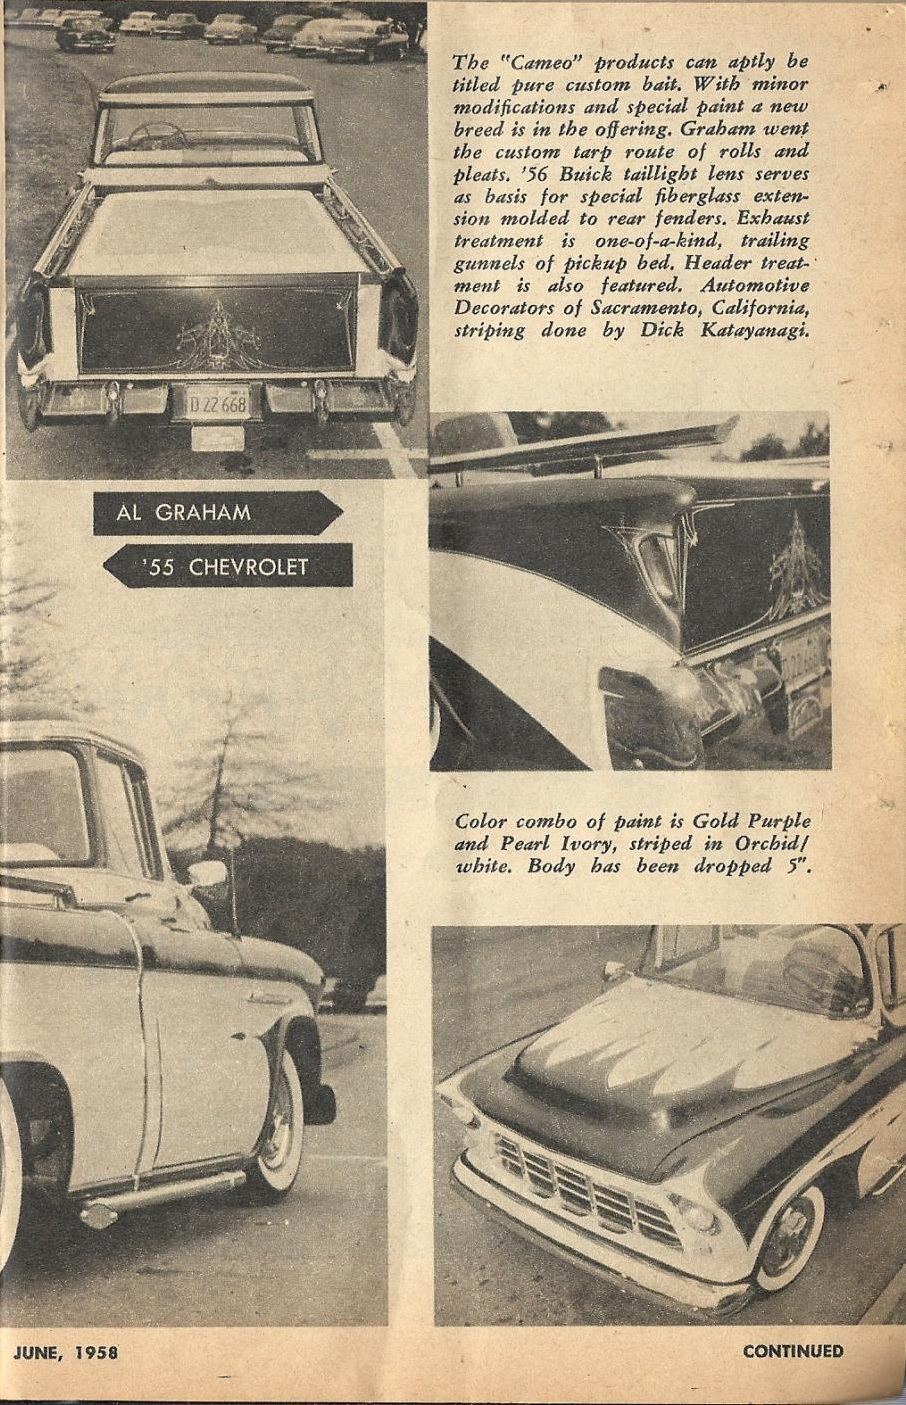 Car Craft - Special Pick Up June 1959 - Pick up Pictorial 2717